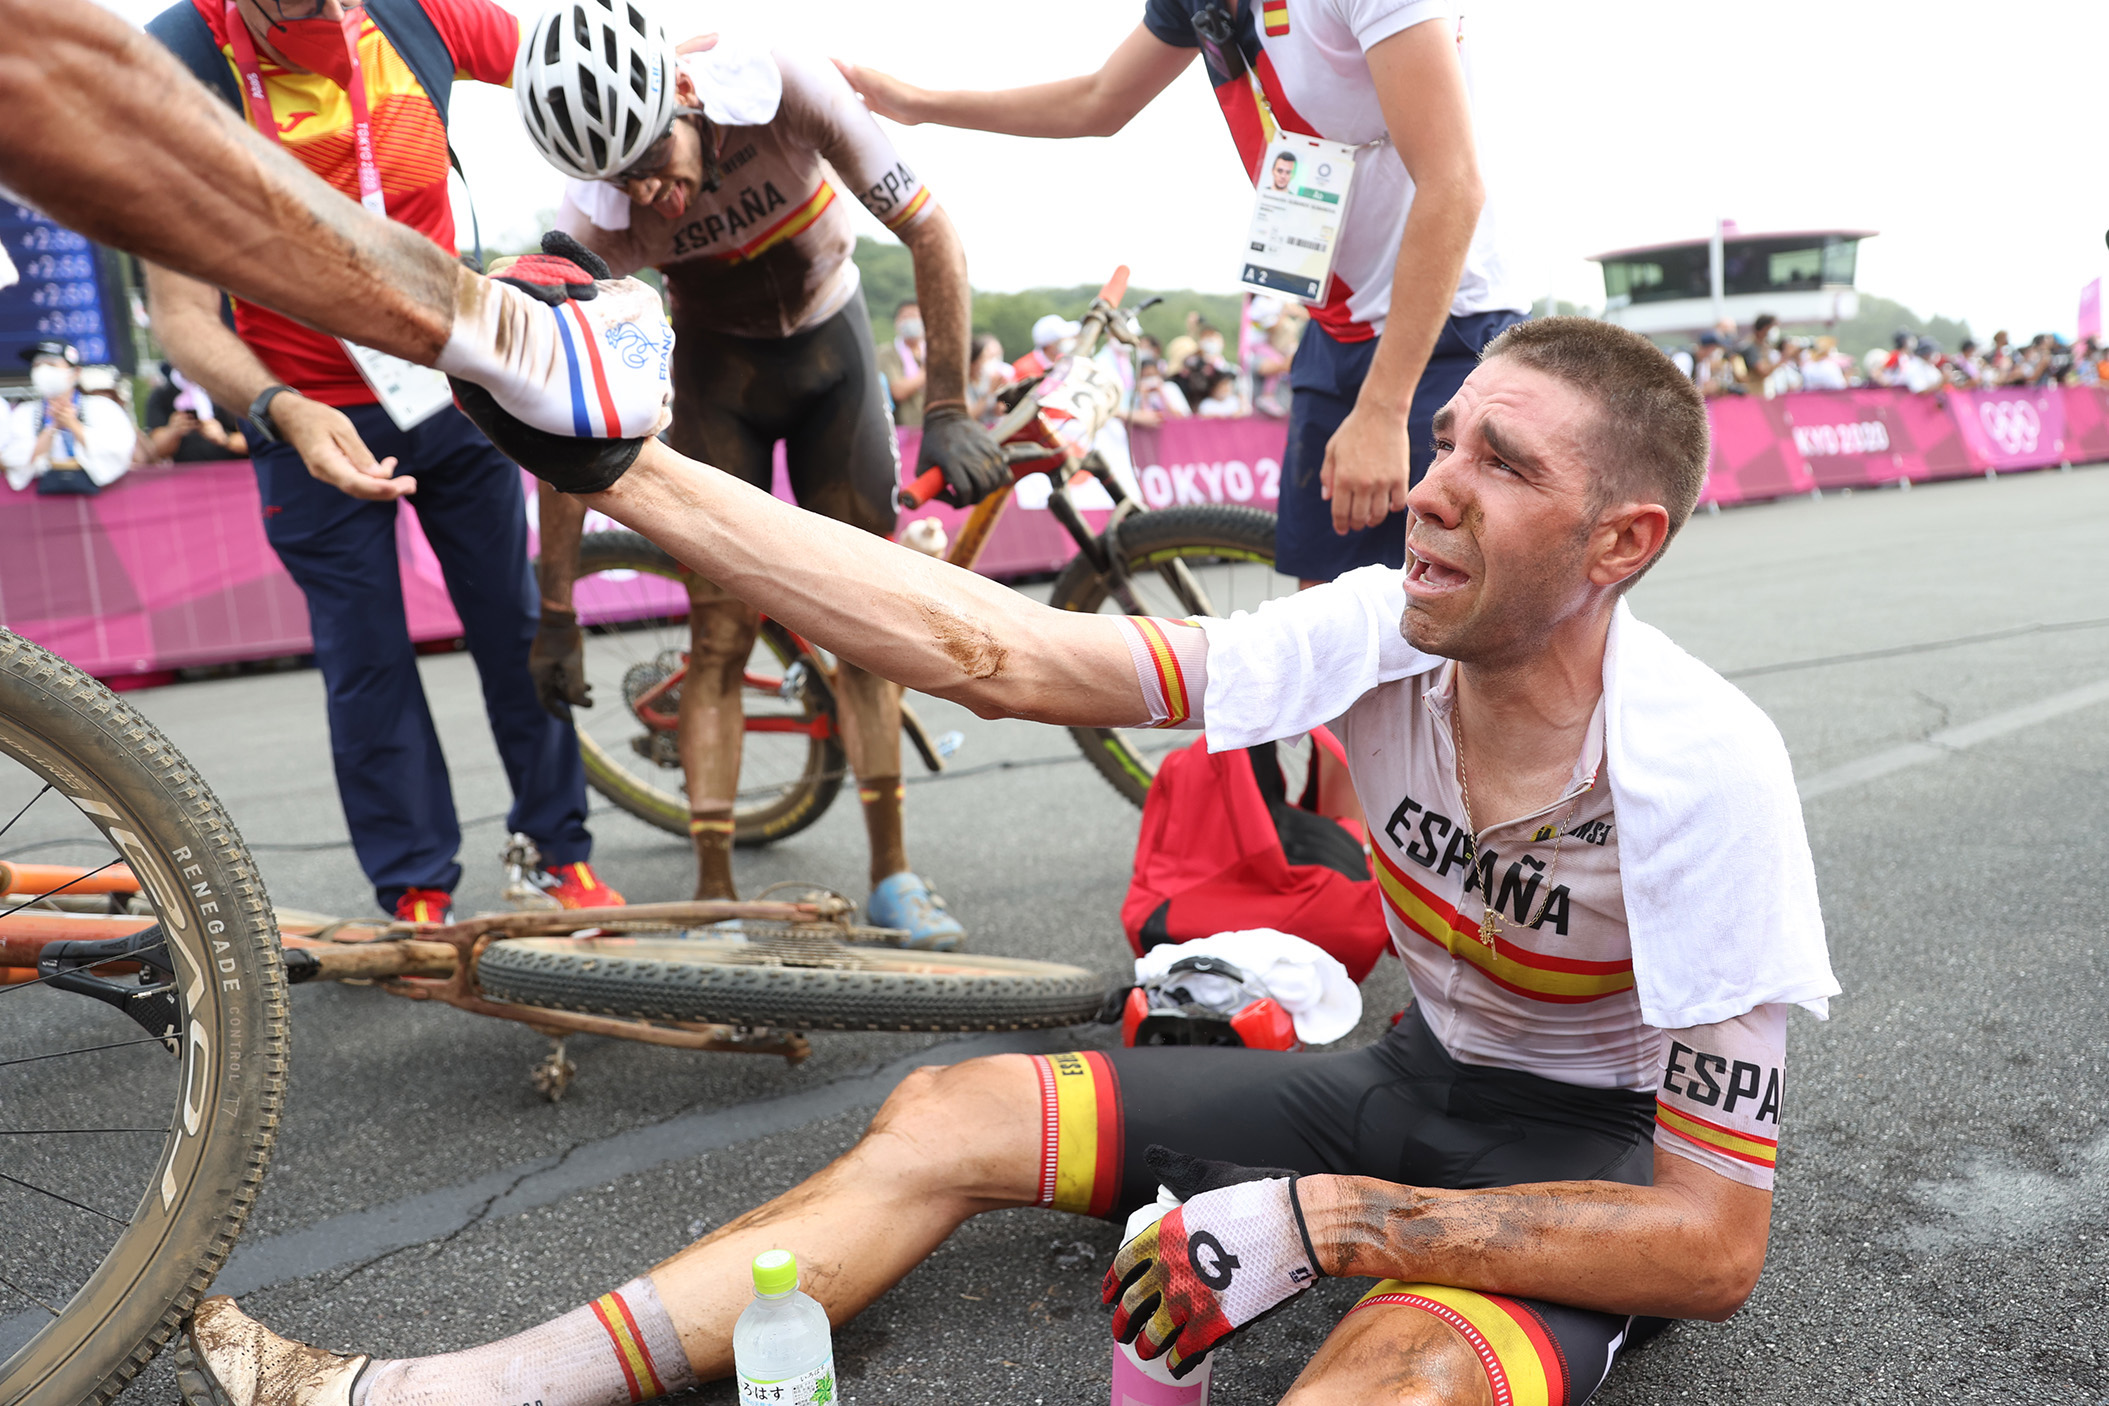 David Valero Serrano of Spain shows his emotions after claiming bronze in the Tokyo Olympics men's mountain bike race at Izu on 26 July 2021